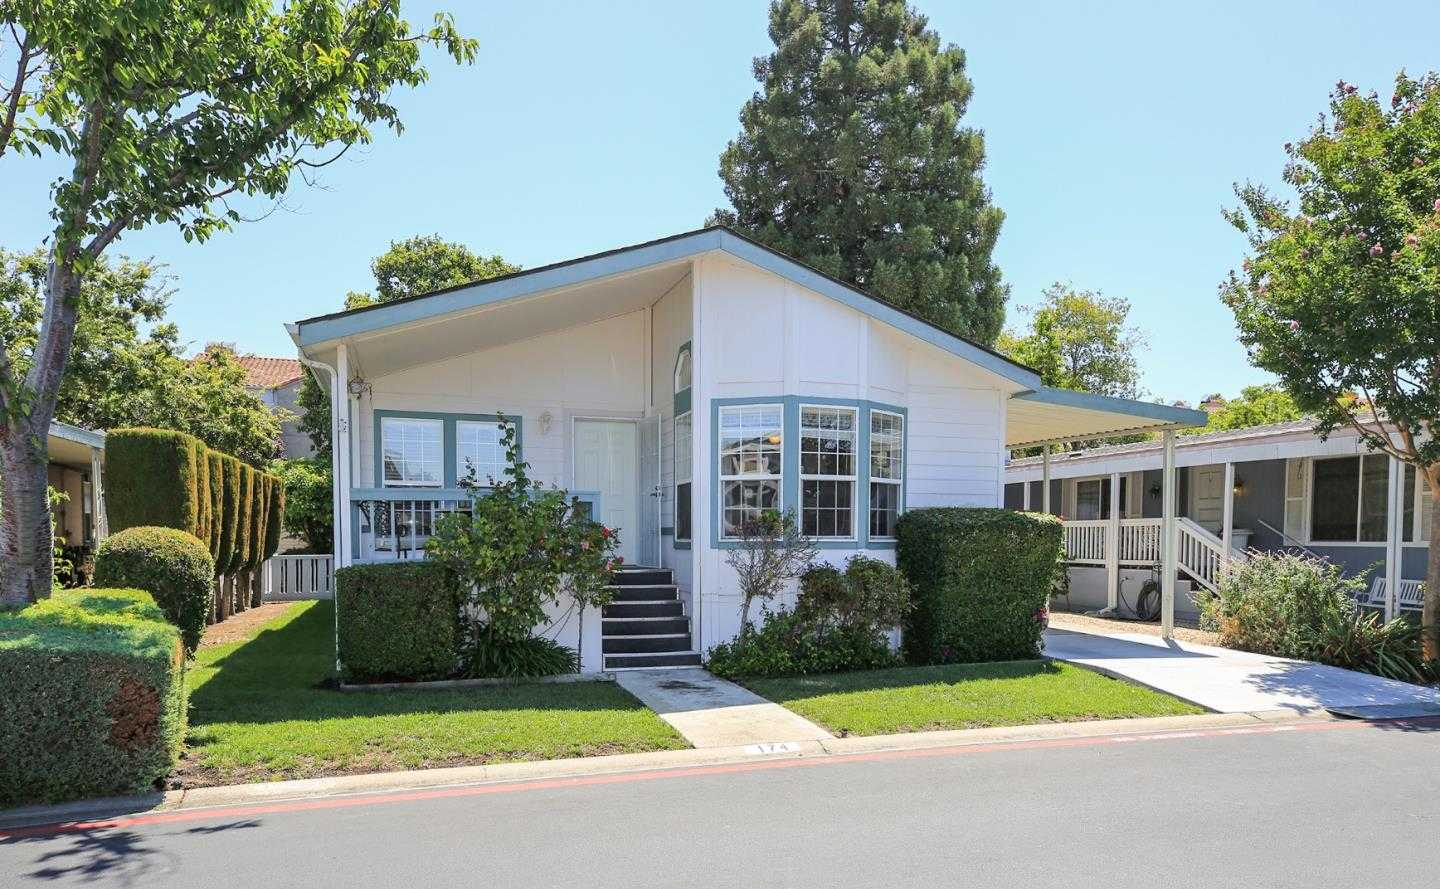 $265,000 - 3Br/2Ba -  for Sale in Sunnyvale